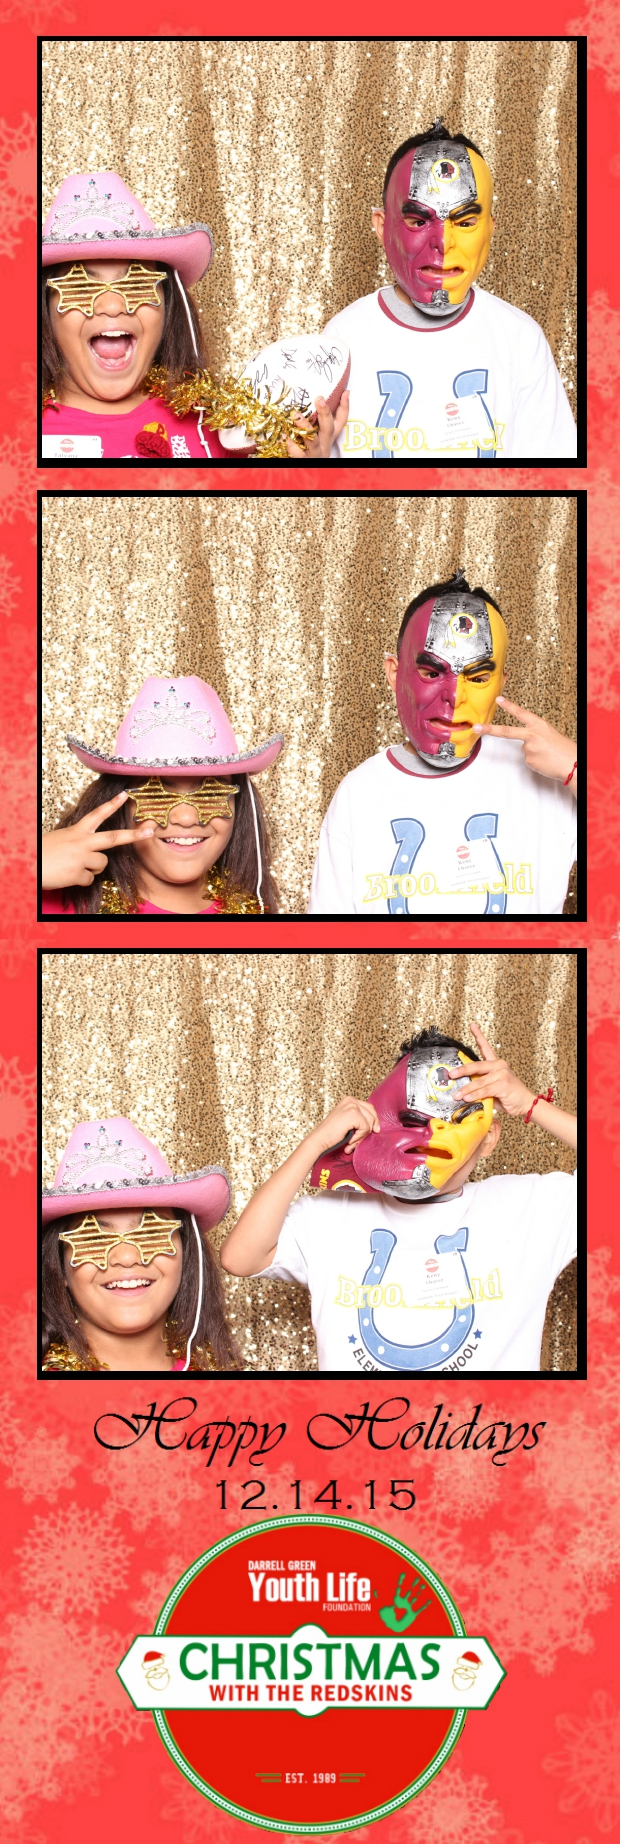 Guest House Events Photo Booth DGYLF Strips (35).jpg